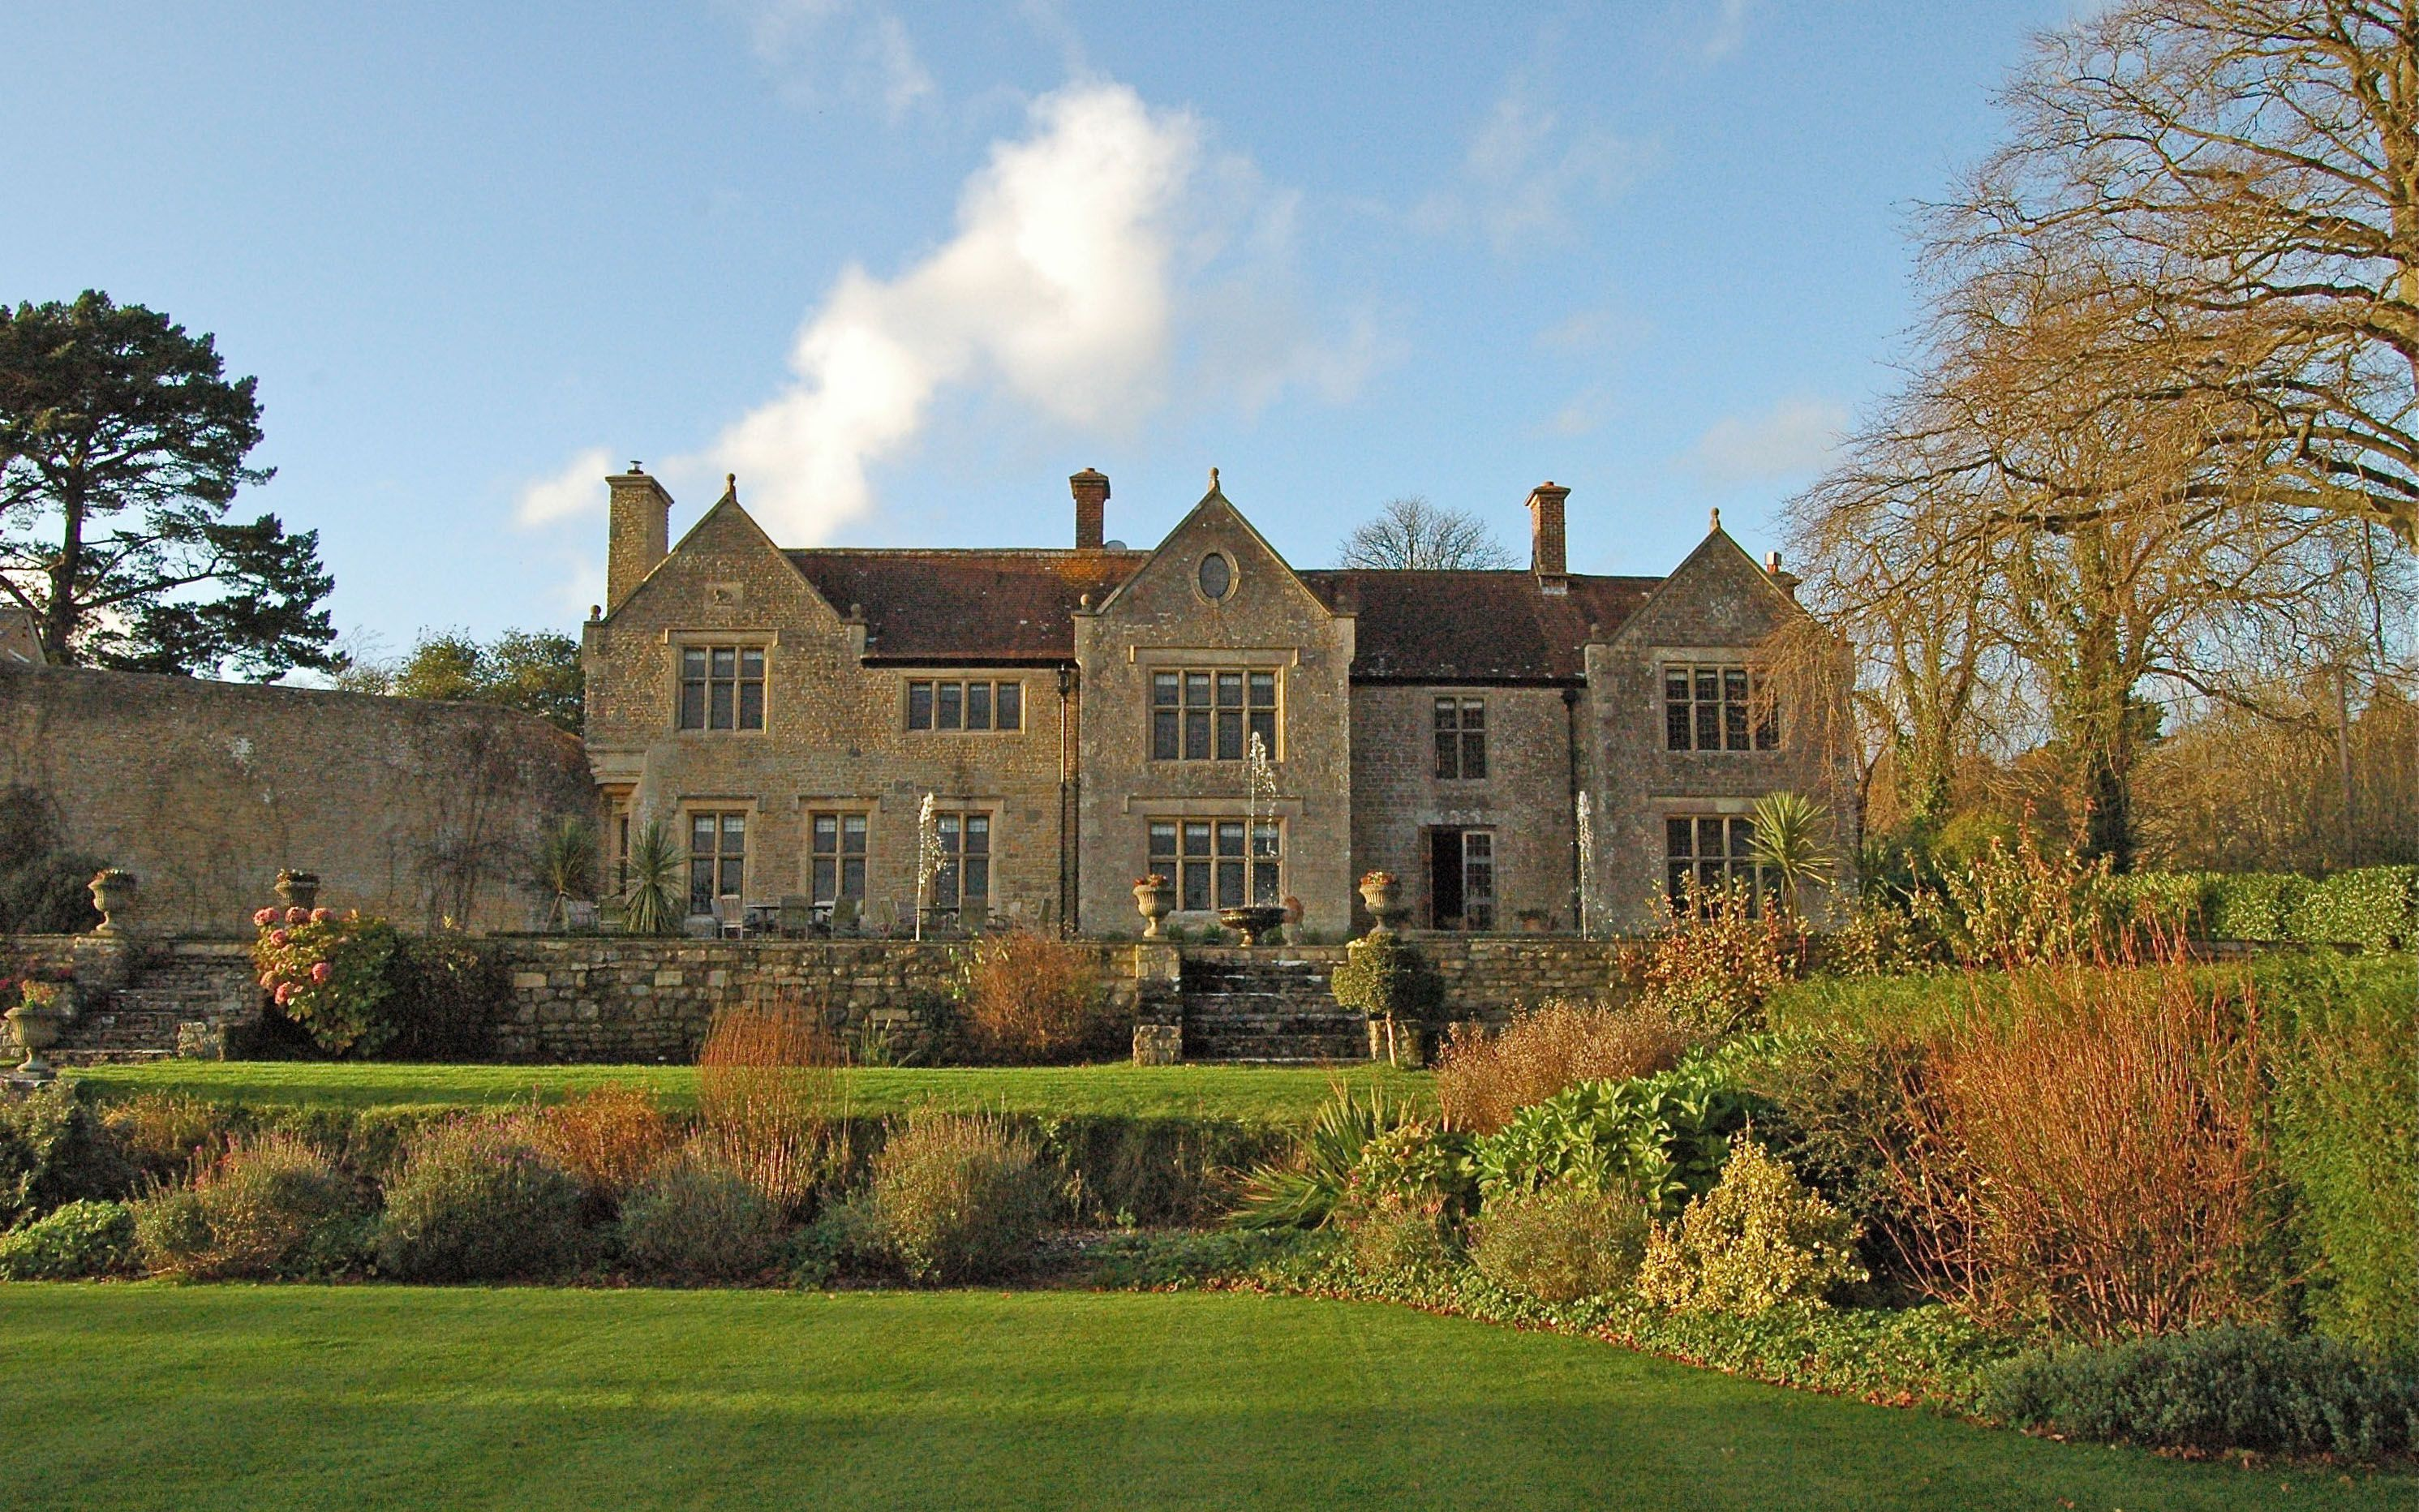 Sleeps Up To Available For Exclusive Use Private Hire Beautiful Dorset Stone Manor House Perfect Weddings Special Celebrations And Parties